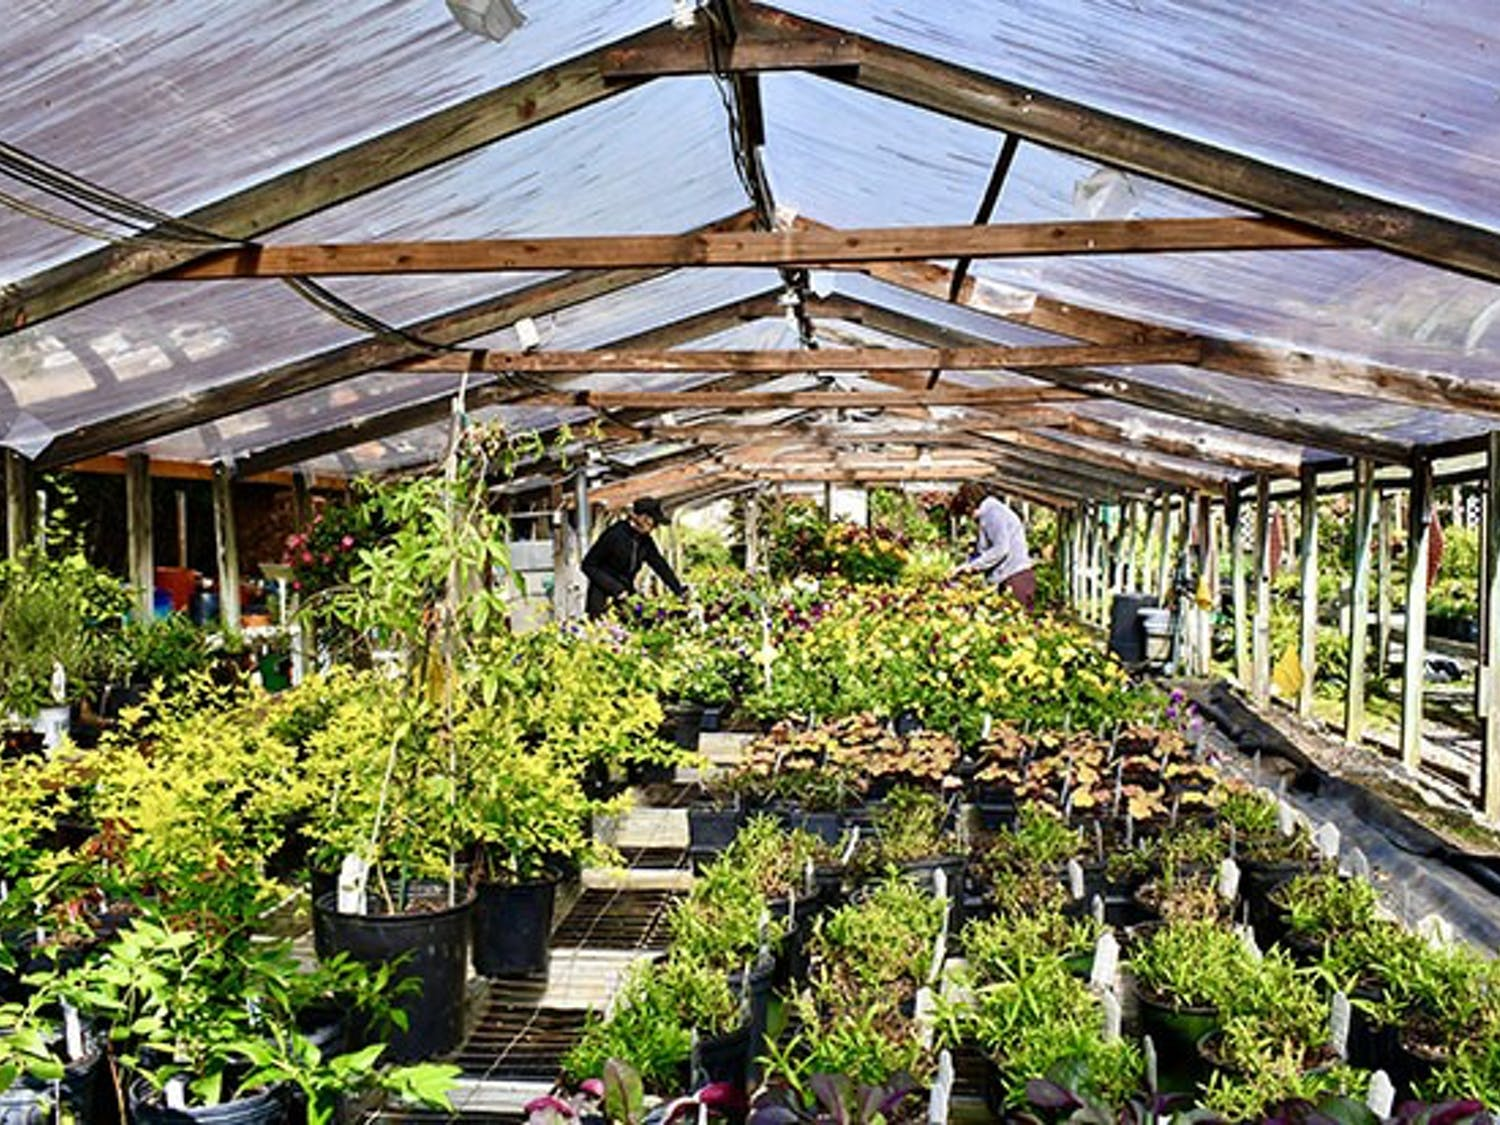 The inside of one of the greenhouses located on the lot. Each greenhouse and tent like structure has a variety of plants ranging from indoor to outdoor natives.